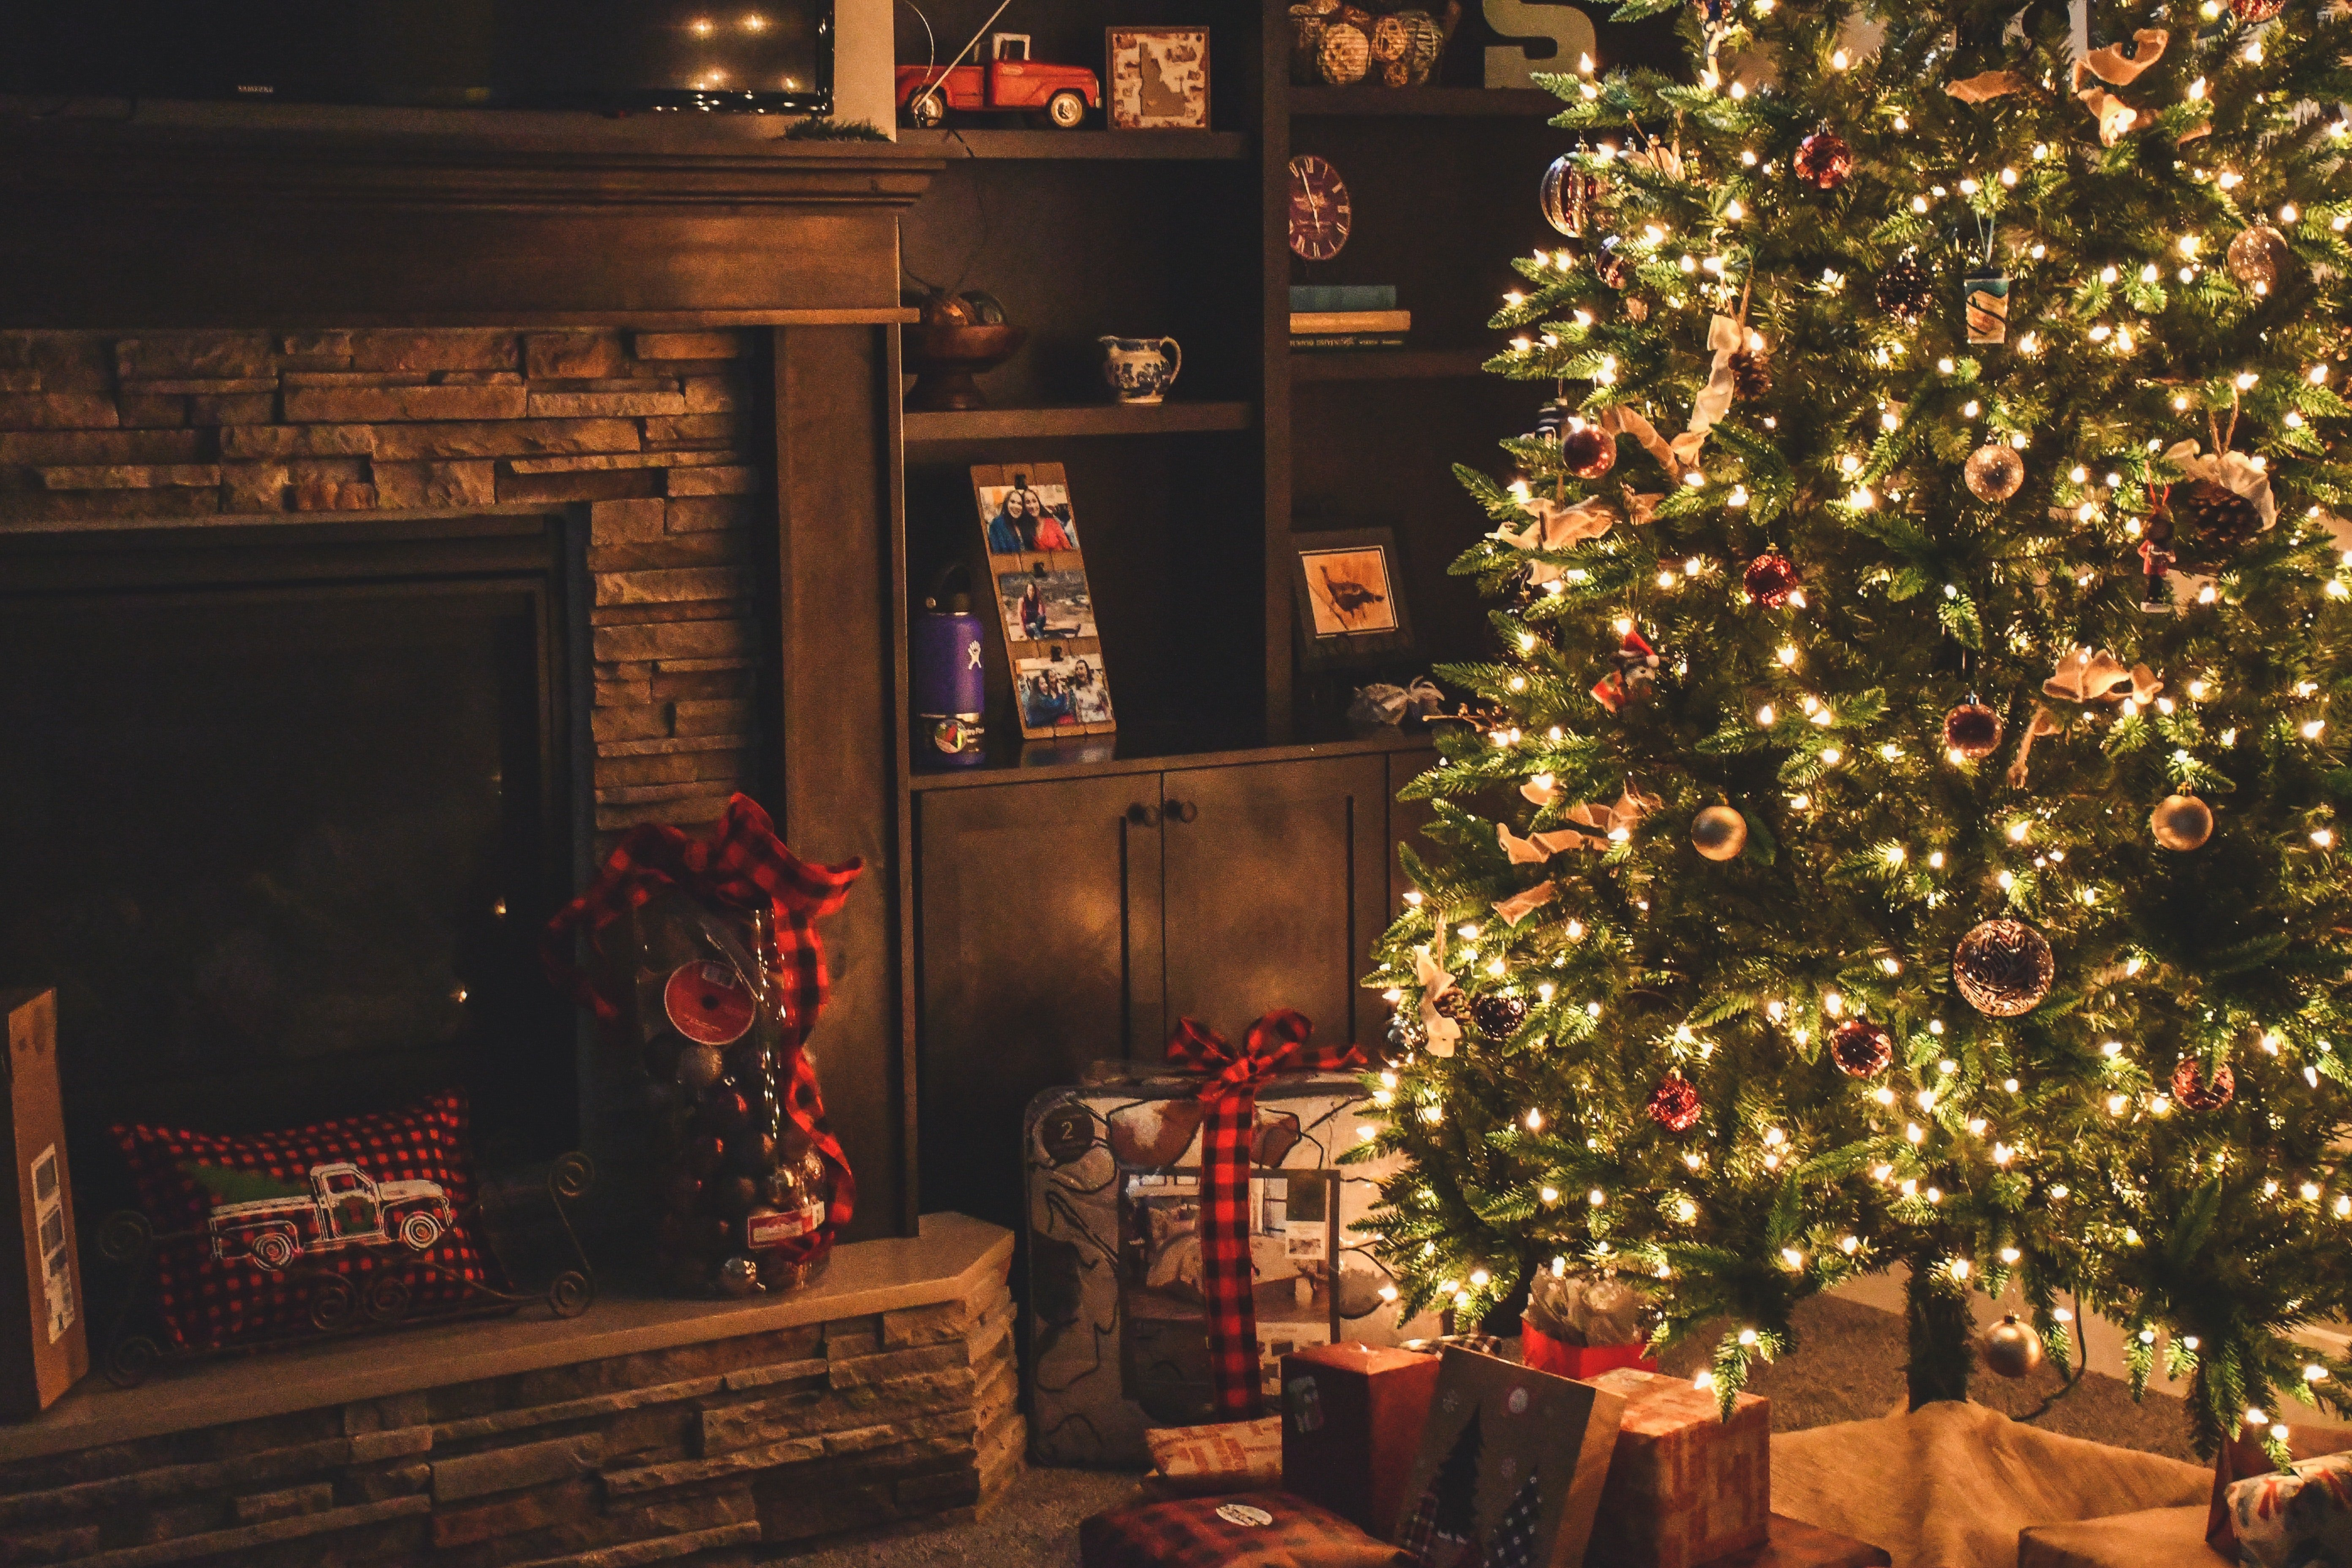 A beautifully decorated Christmas tree.   Source: Pexels